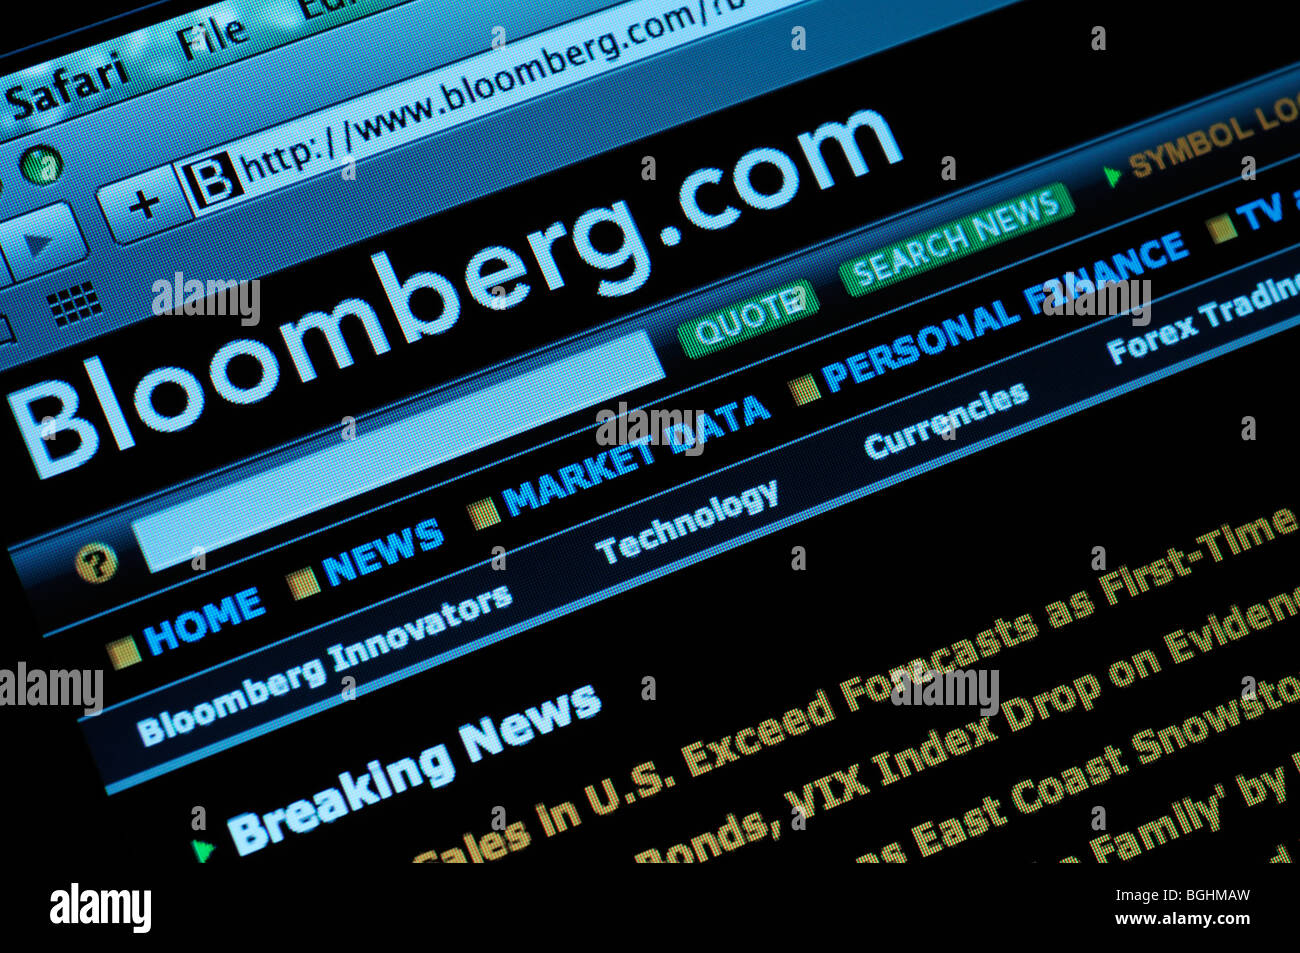 Bloomberg.com website - Stock Image